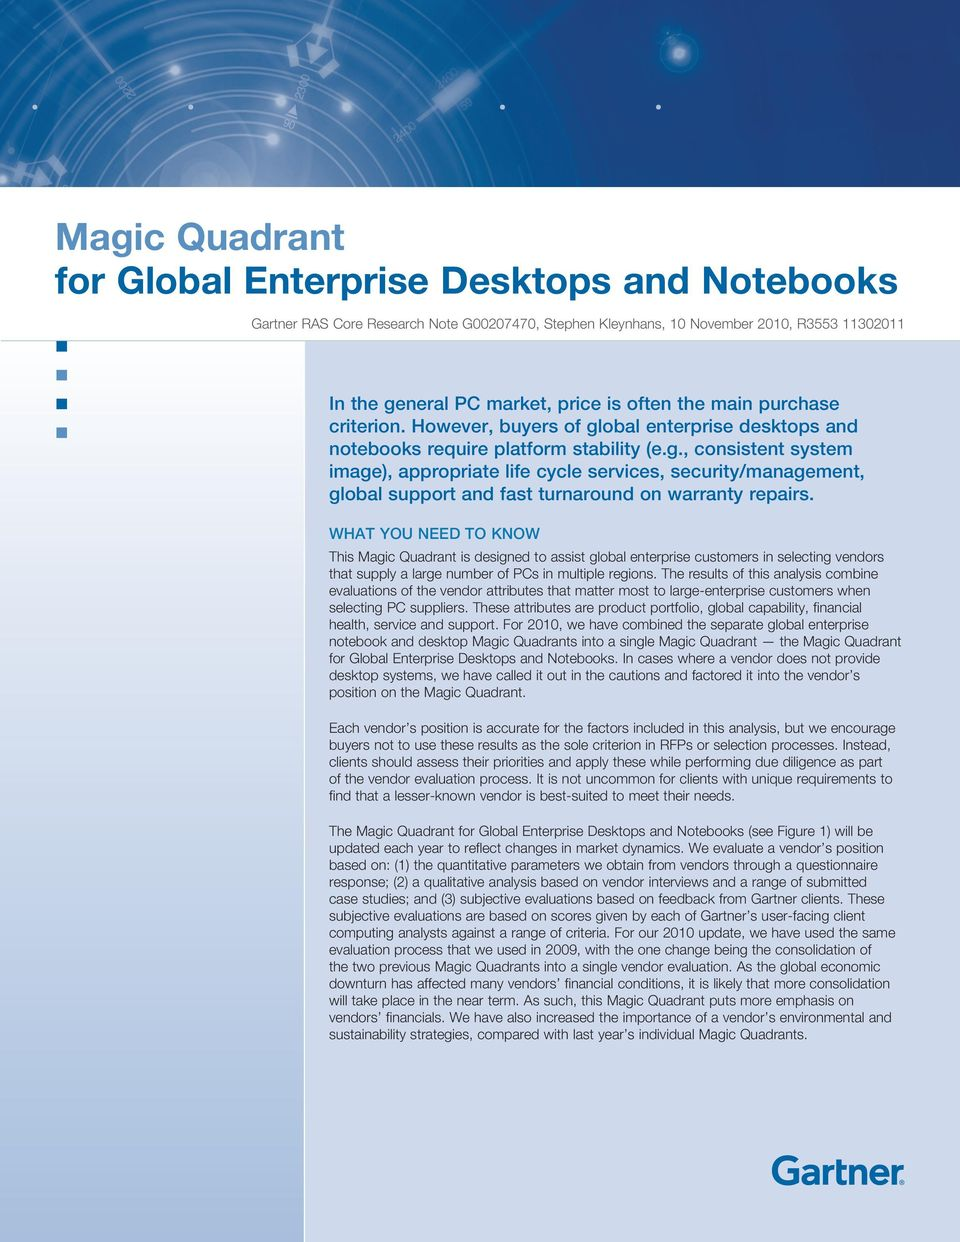 WHAT YOU NEED TO KNOW This Magic Quadrant is designed to assist global enterprise customers in selecting vendors that supply a large number of PCs in multiple regions.